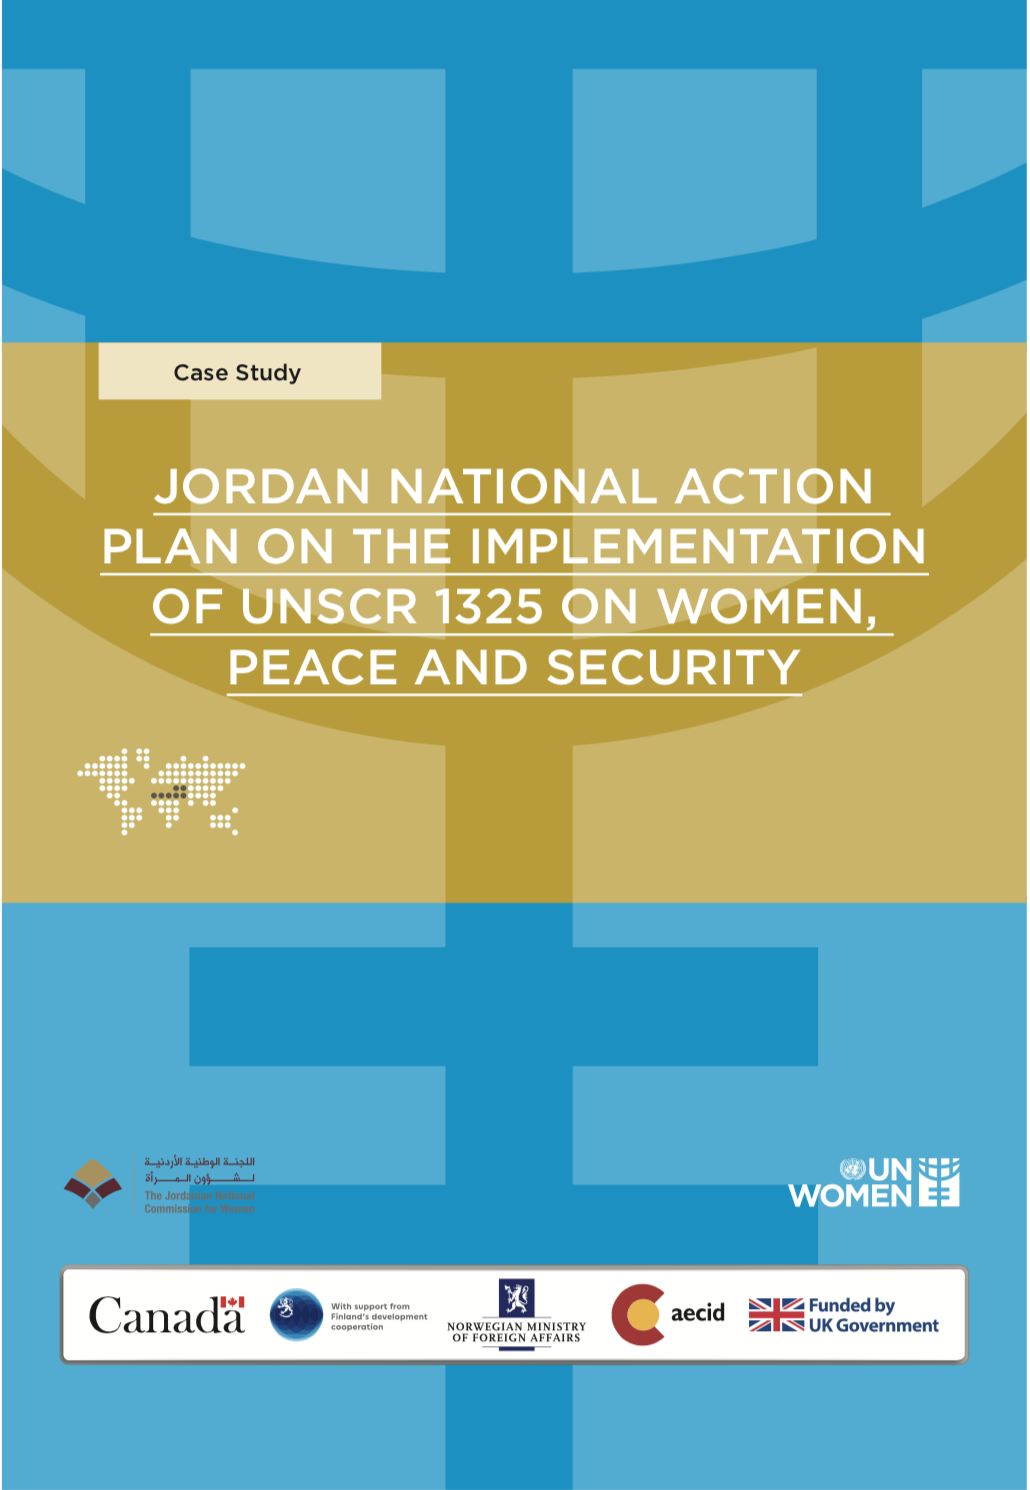 Jordan National Action Plan on the Implementation of UNSCR 1325 on Women, Peace and Security